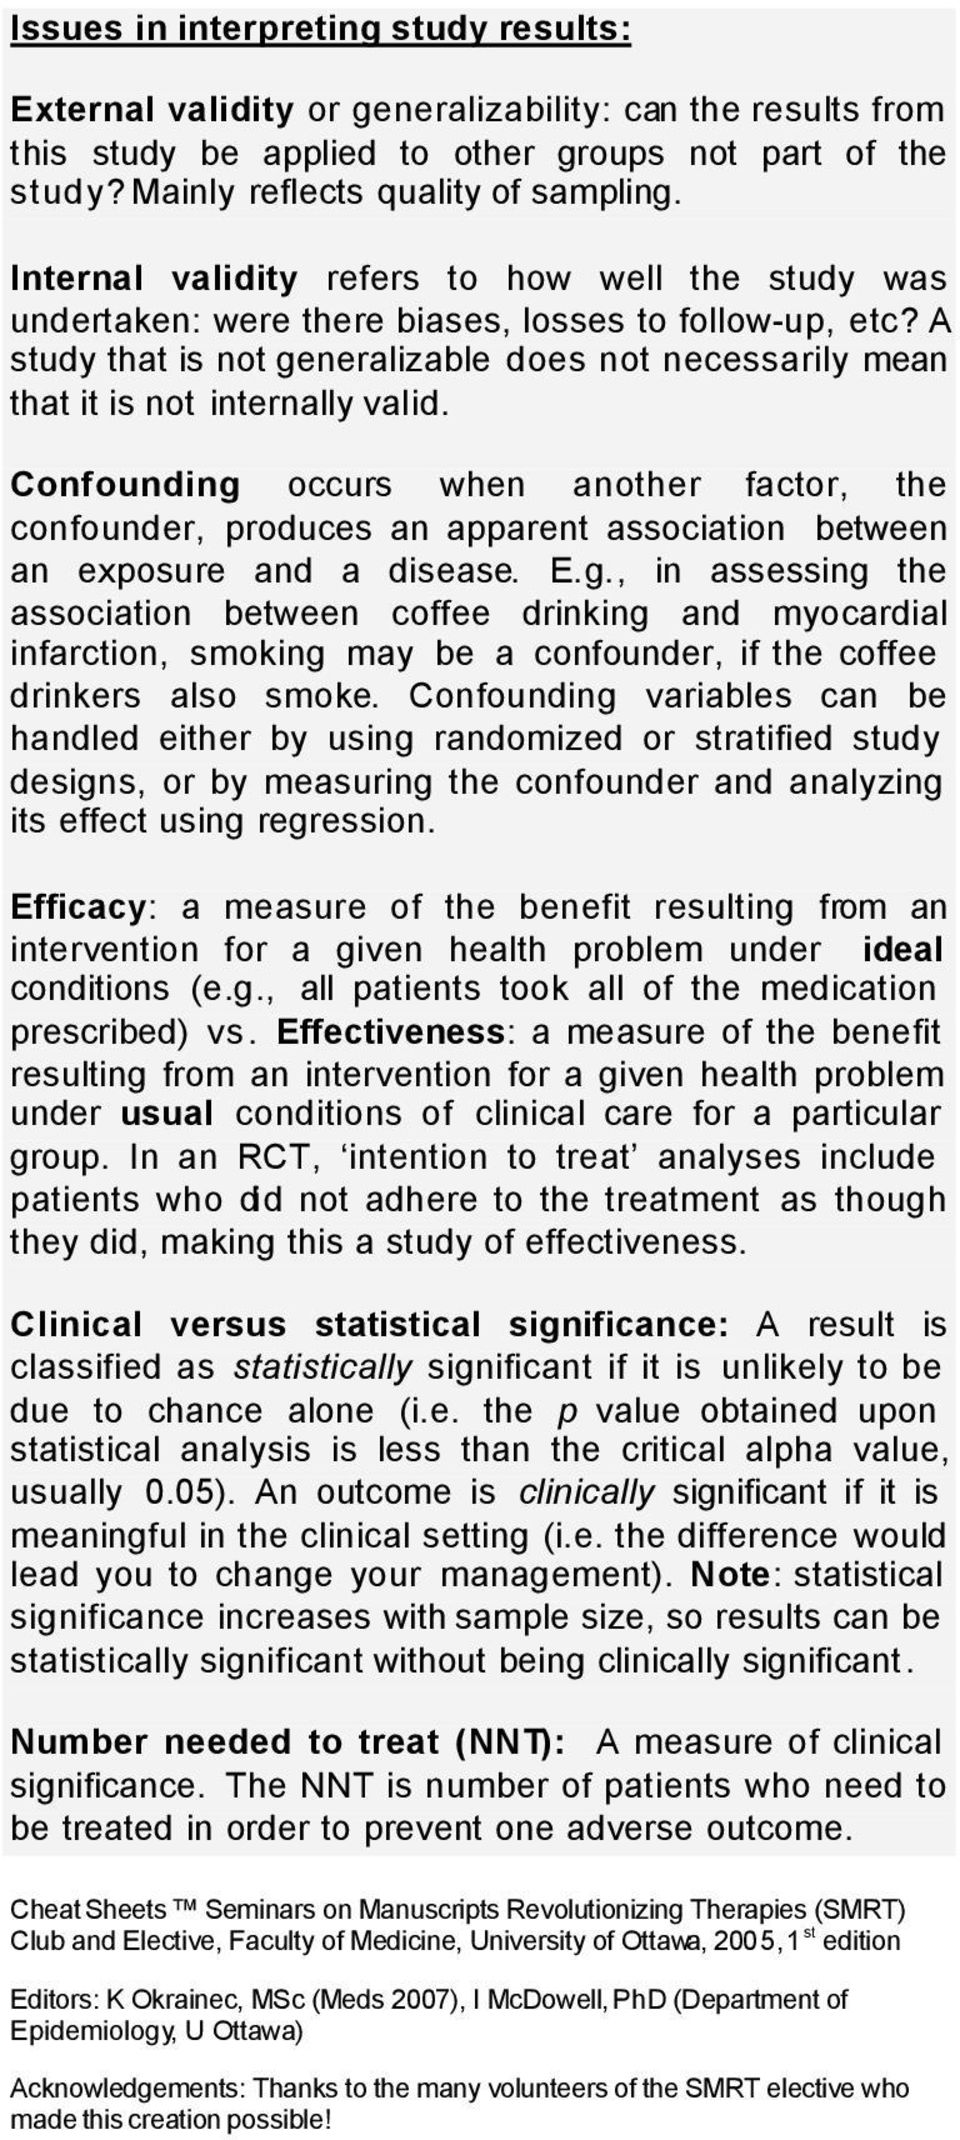 Confounding occurs when another factor, the confounder, produces an apparent association between an exposure and a disease. E.g., in assessing the association between coffee drinking and myocardial infarction, smoking may be a confounder, if the coffee drinkers also smoke.